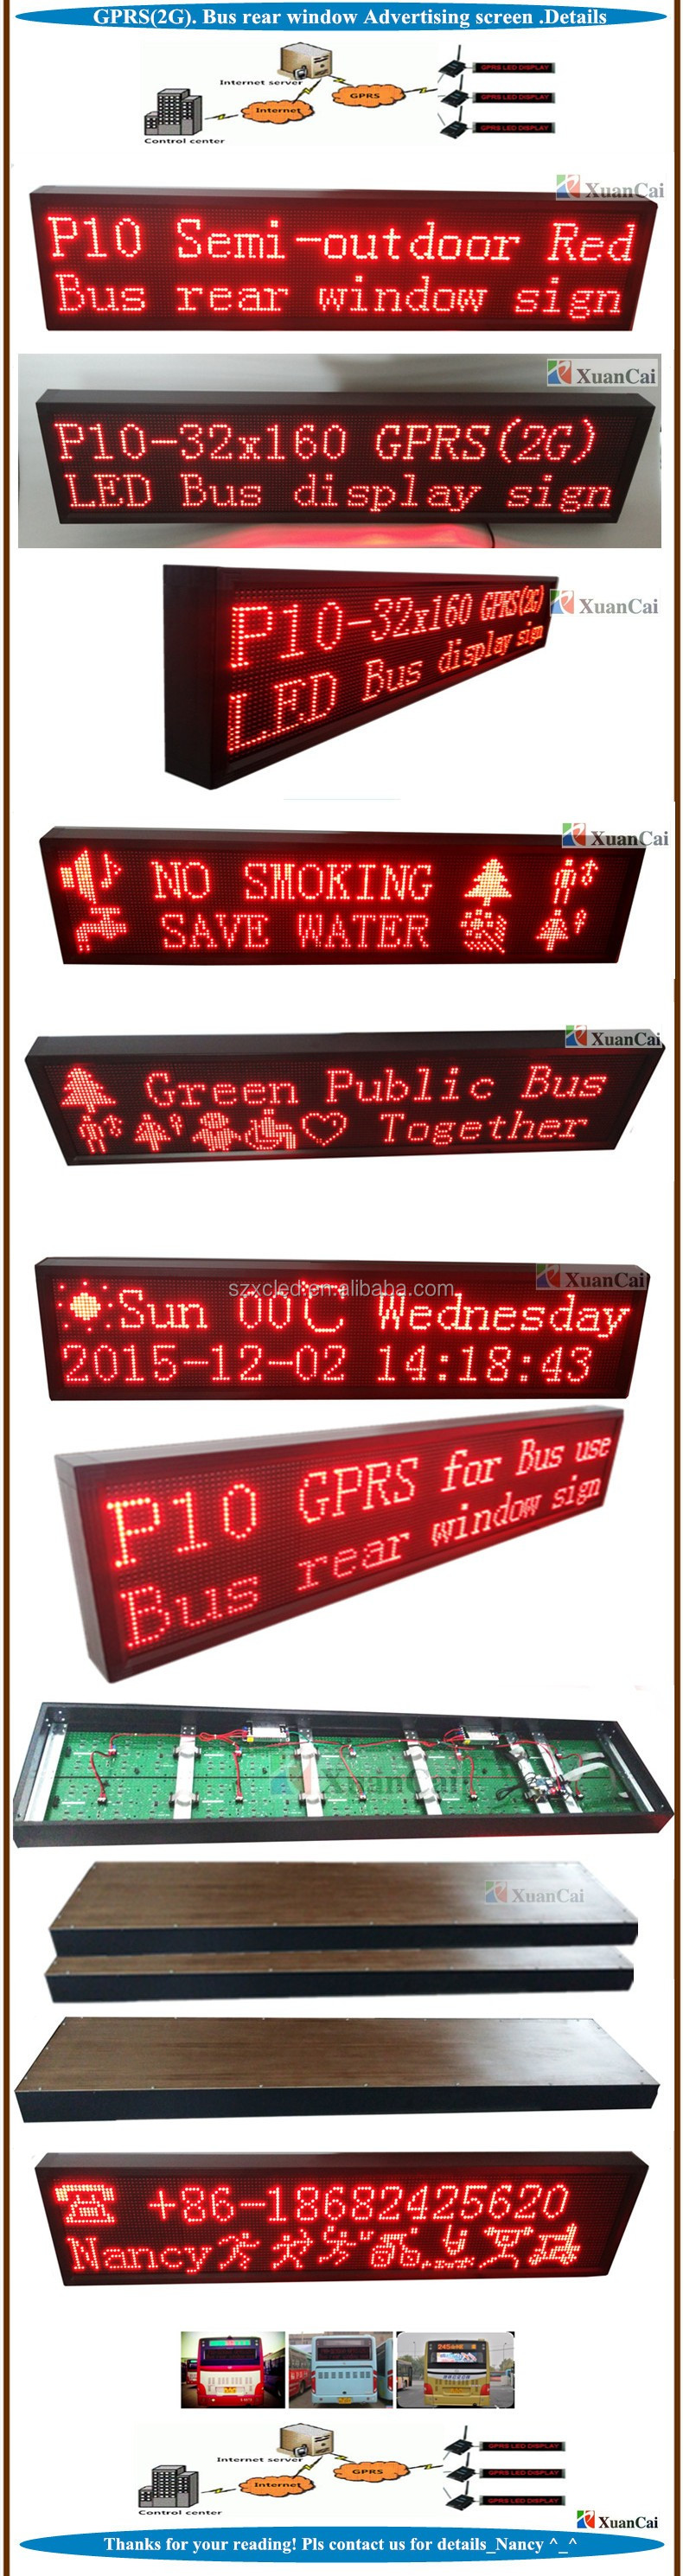 GPRS(2G) Bus rear window P10-32x160 (32x160cm) 24V Advertising LED message screen panel